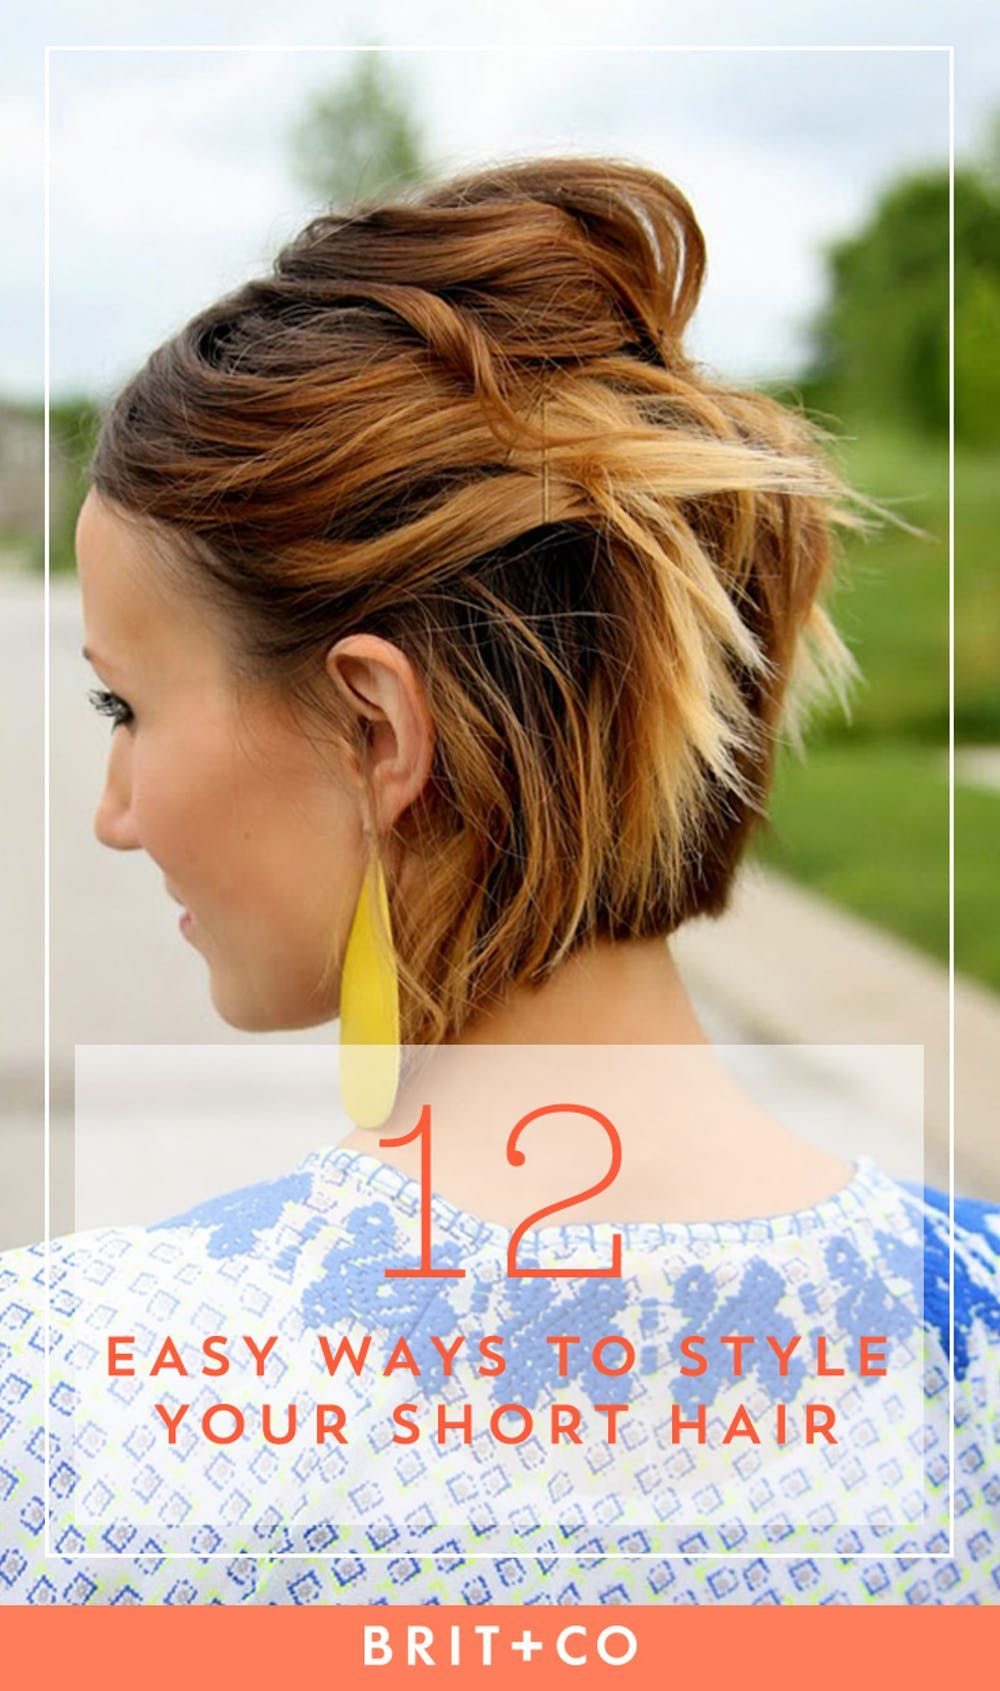 10-minute 'dos: 12 quick ways to style short hair | hair